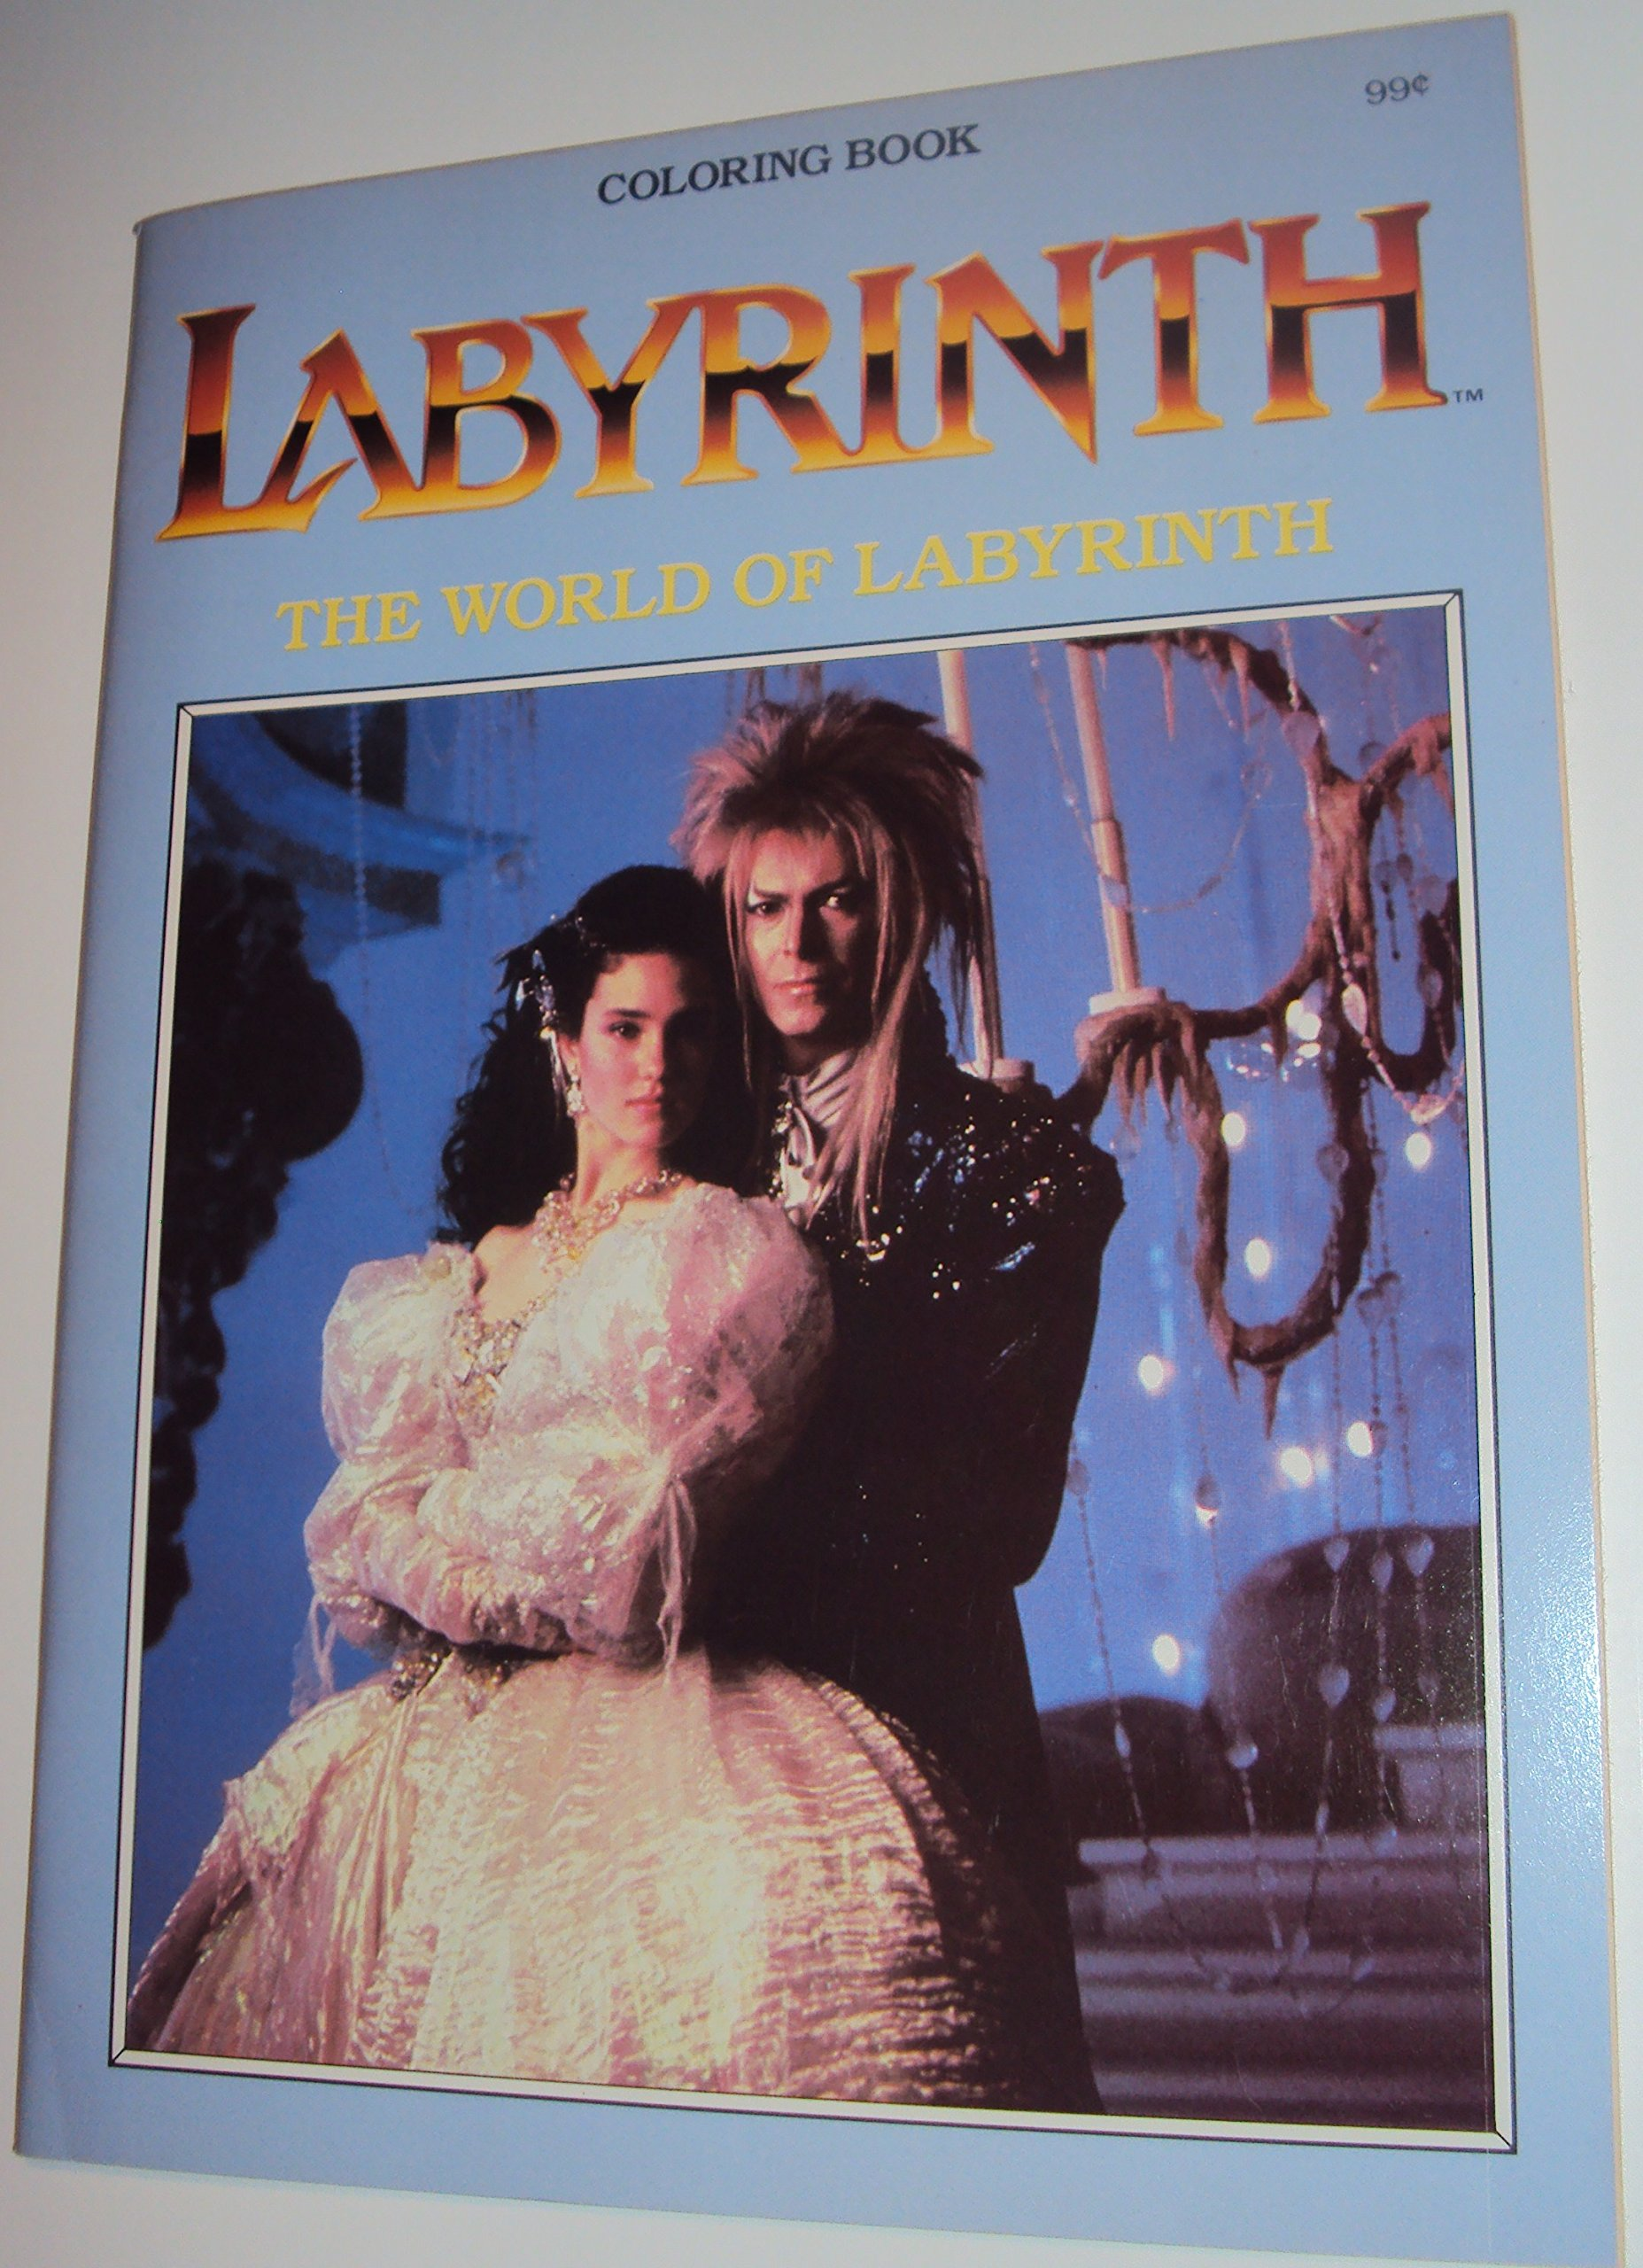 labyrinth the world of labyrinth coloring book henson associates marvel associates 0791043555915 amazoncom books